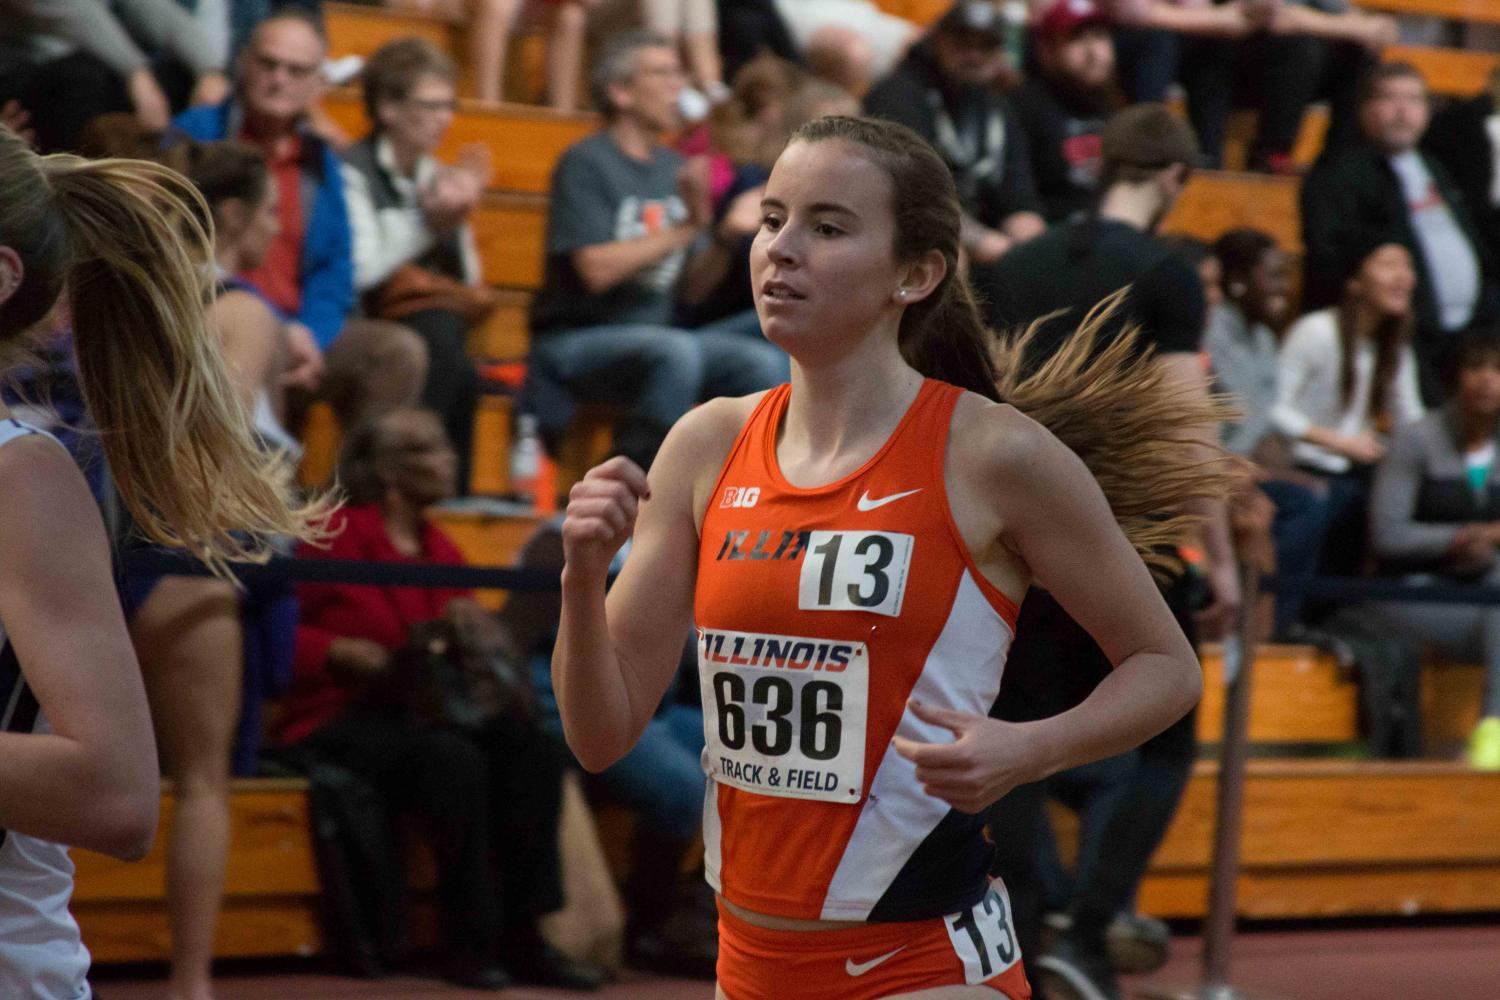 Valerie+Bobart+competes+in+the+1+mile+run+during+the+Orange+%26+Blue+Meet+at+Armory+on+Feb.+20%2C+2016.